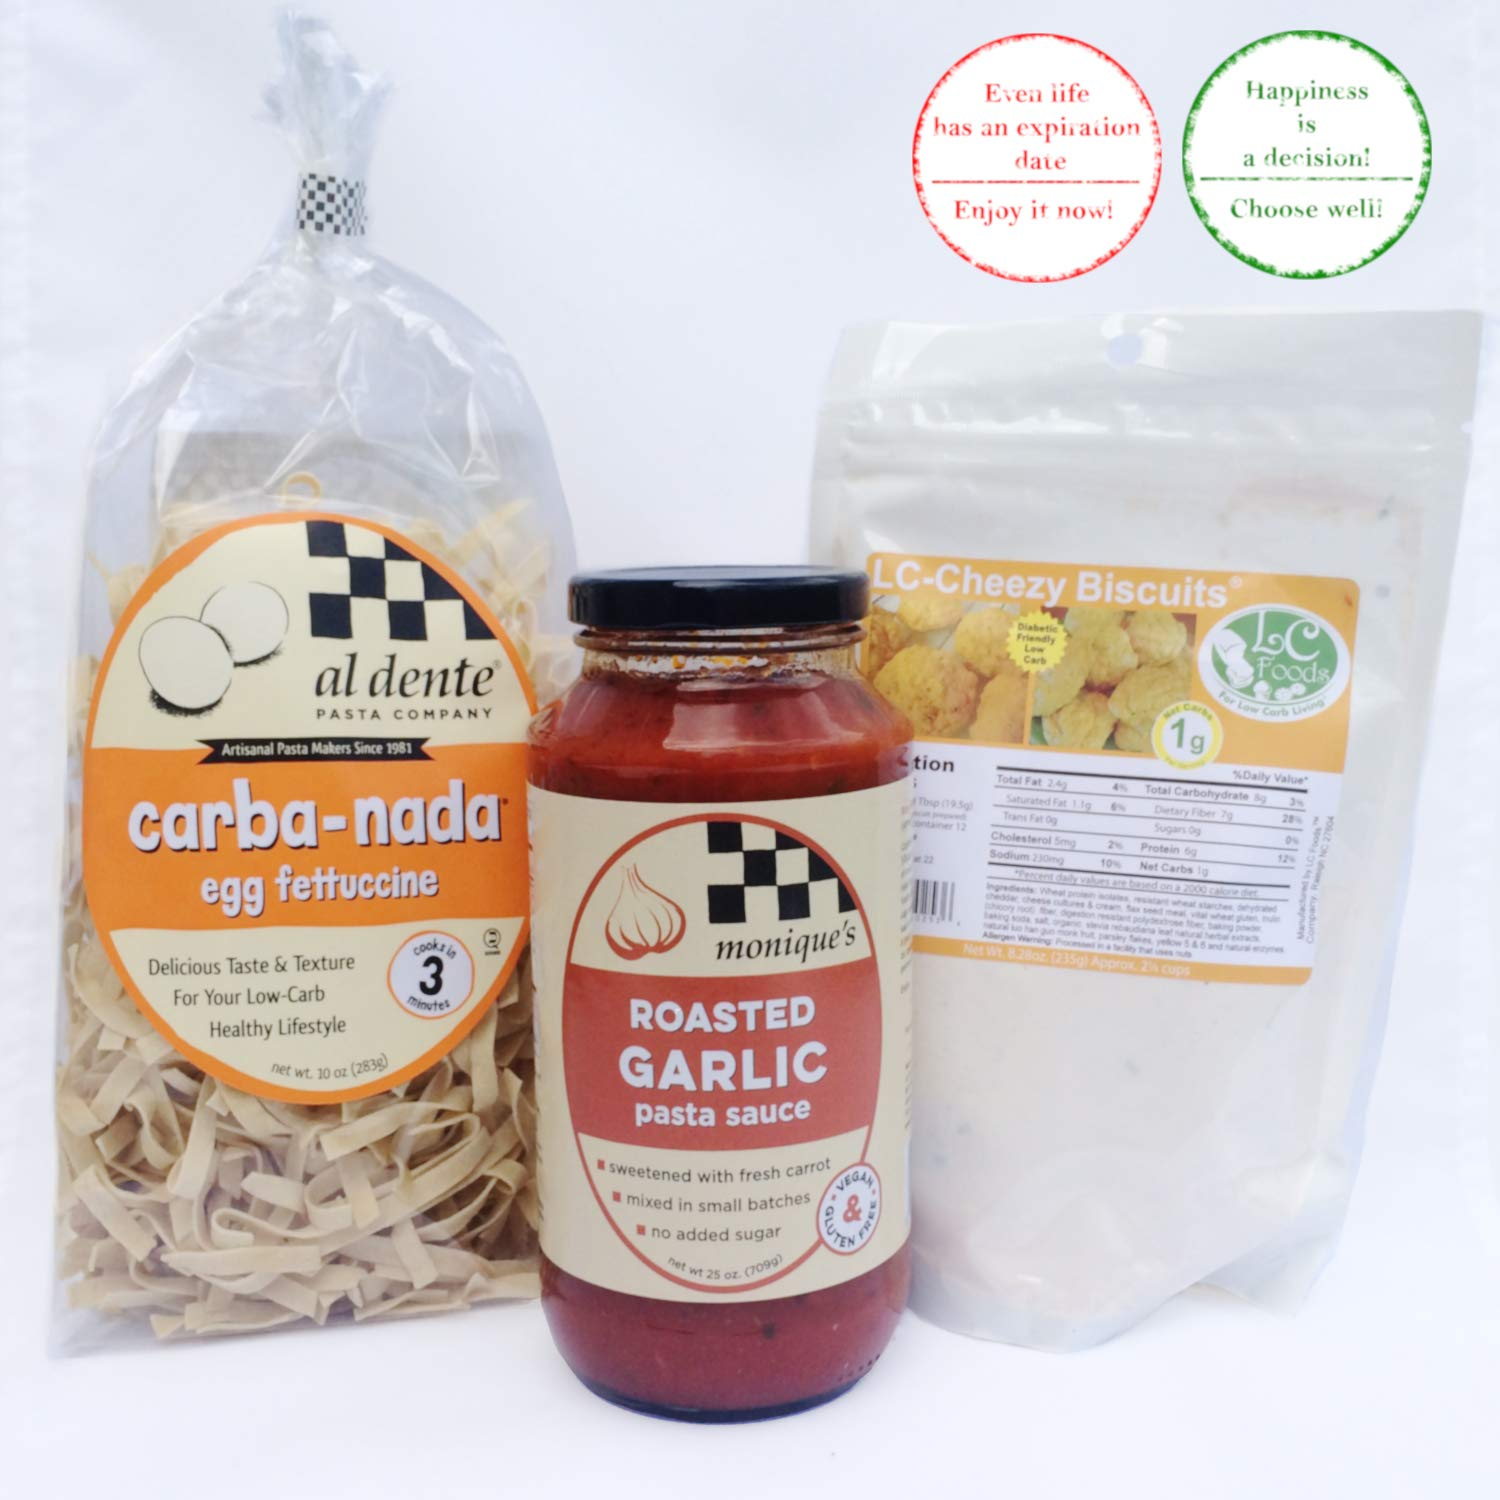 Keto Products, Diabetic Foods, Al Dente Pasta Co. Carba Nada Egg Fettuccine + Monique's Roasted Garlic Sauce + LC Foods Cheezy Biscuit Mix Bundle, High Protein Noodles